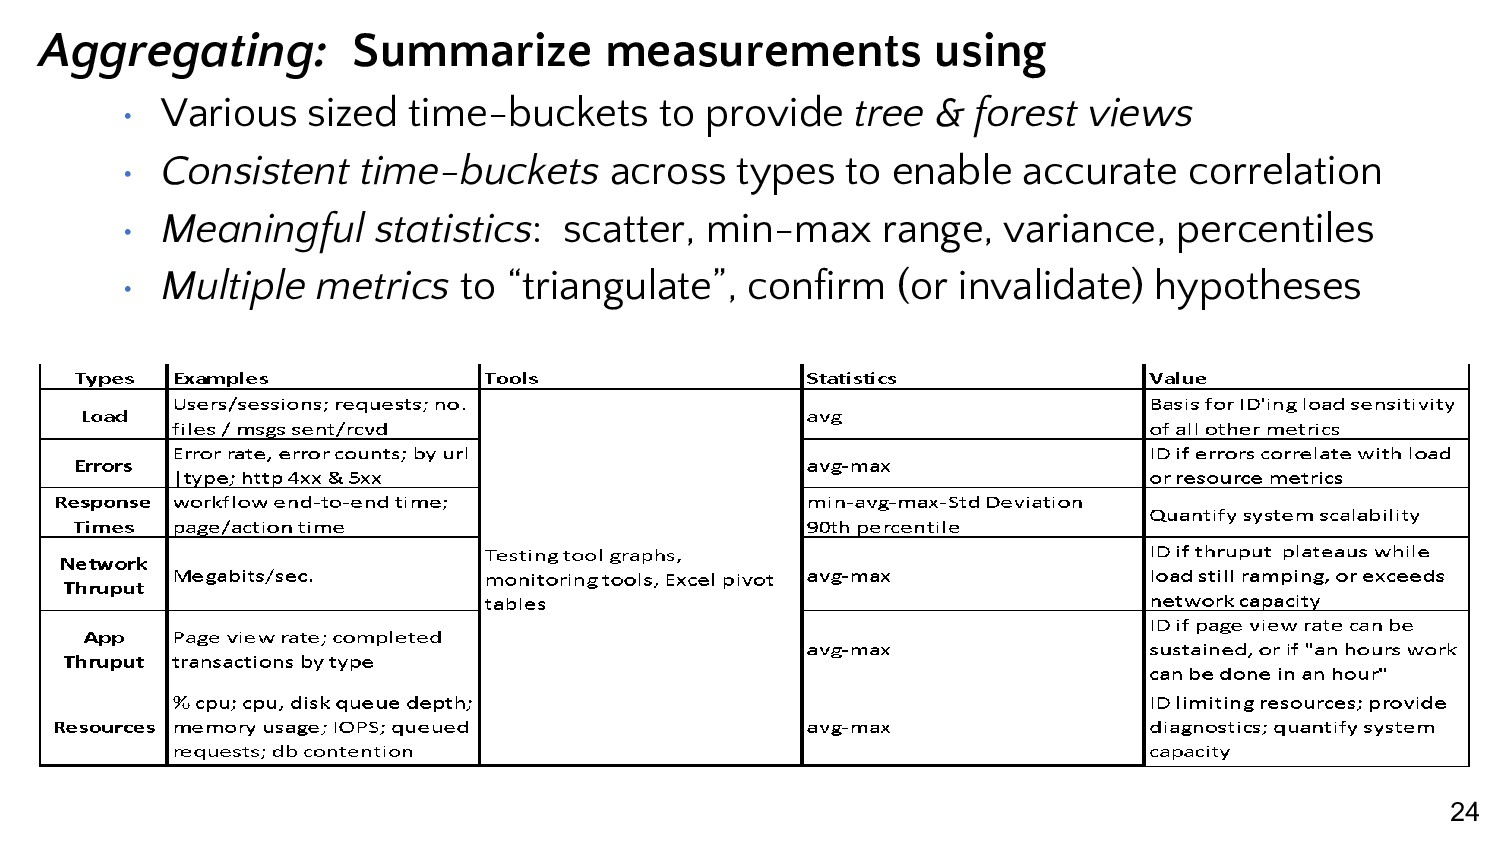 24 Aggregating: Summarize measurements using • ...